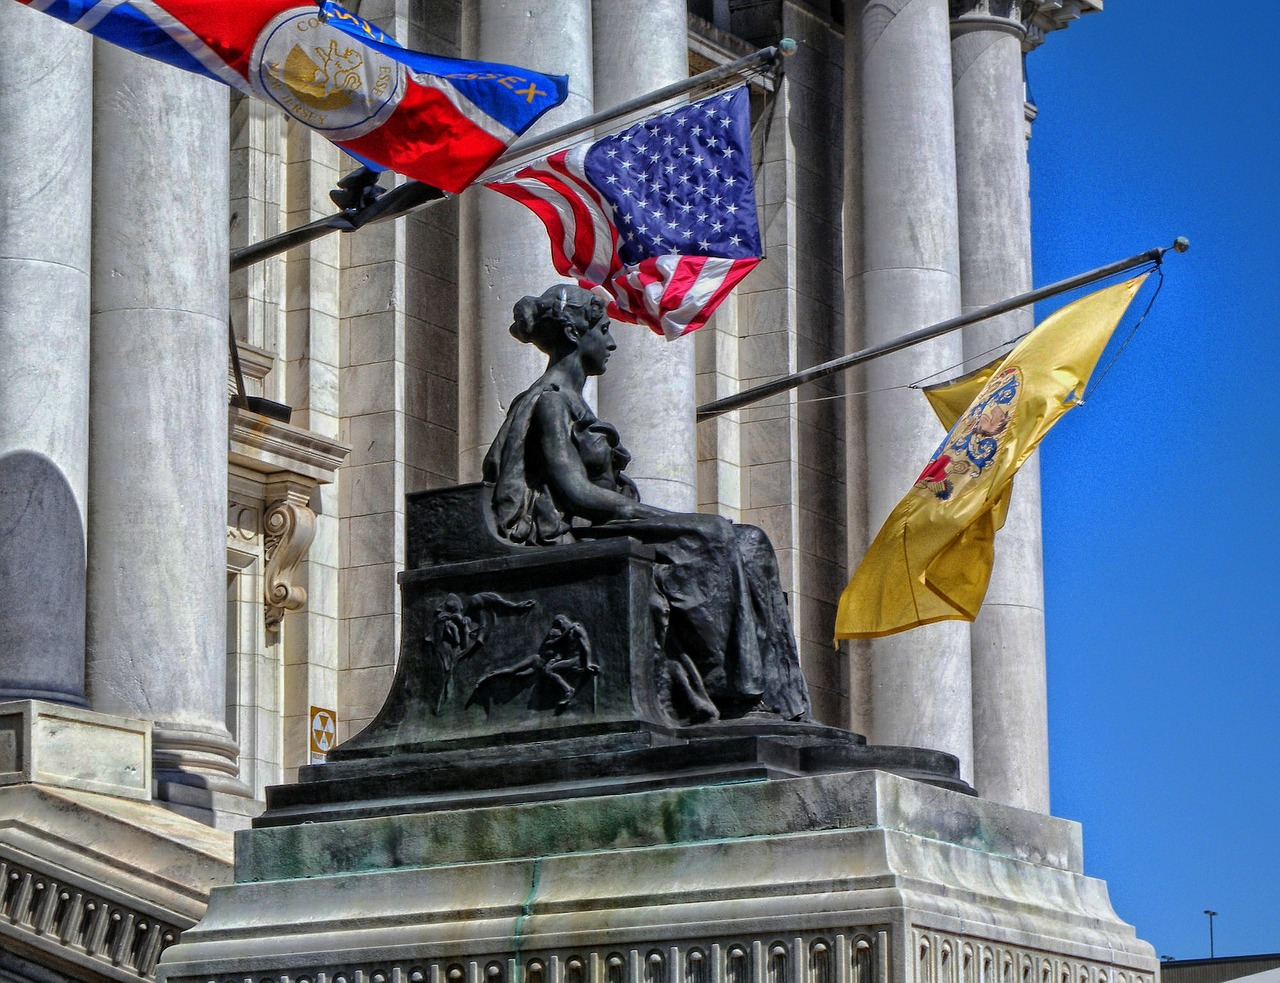 Essex County New Jersey courthouse statute and flags